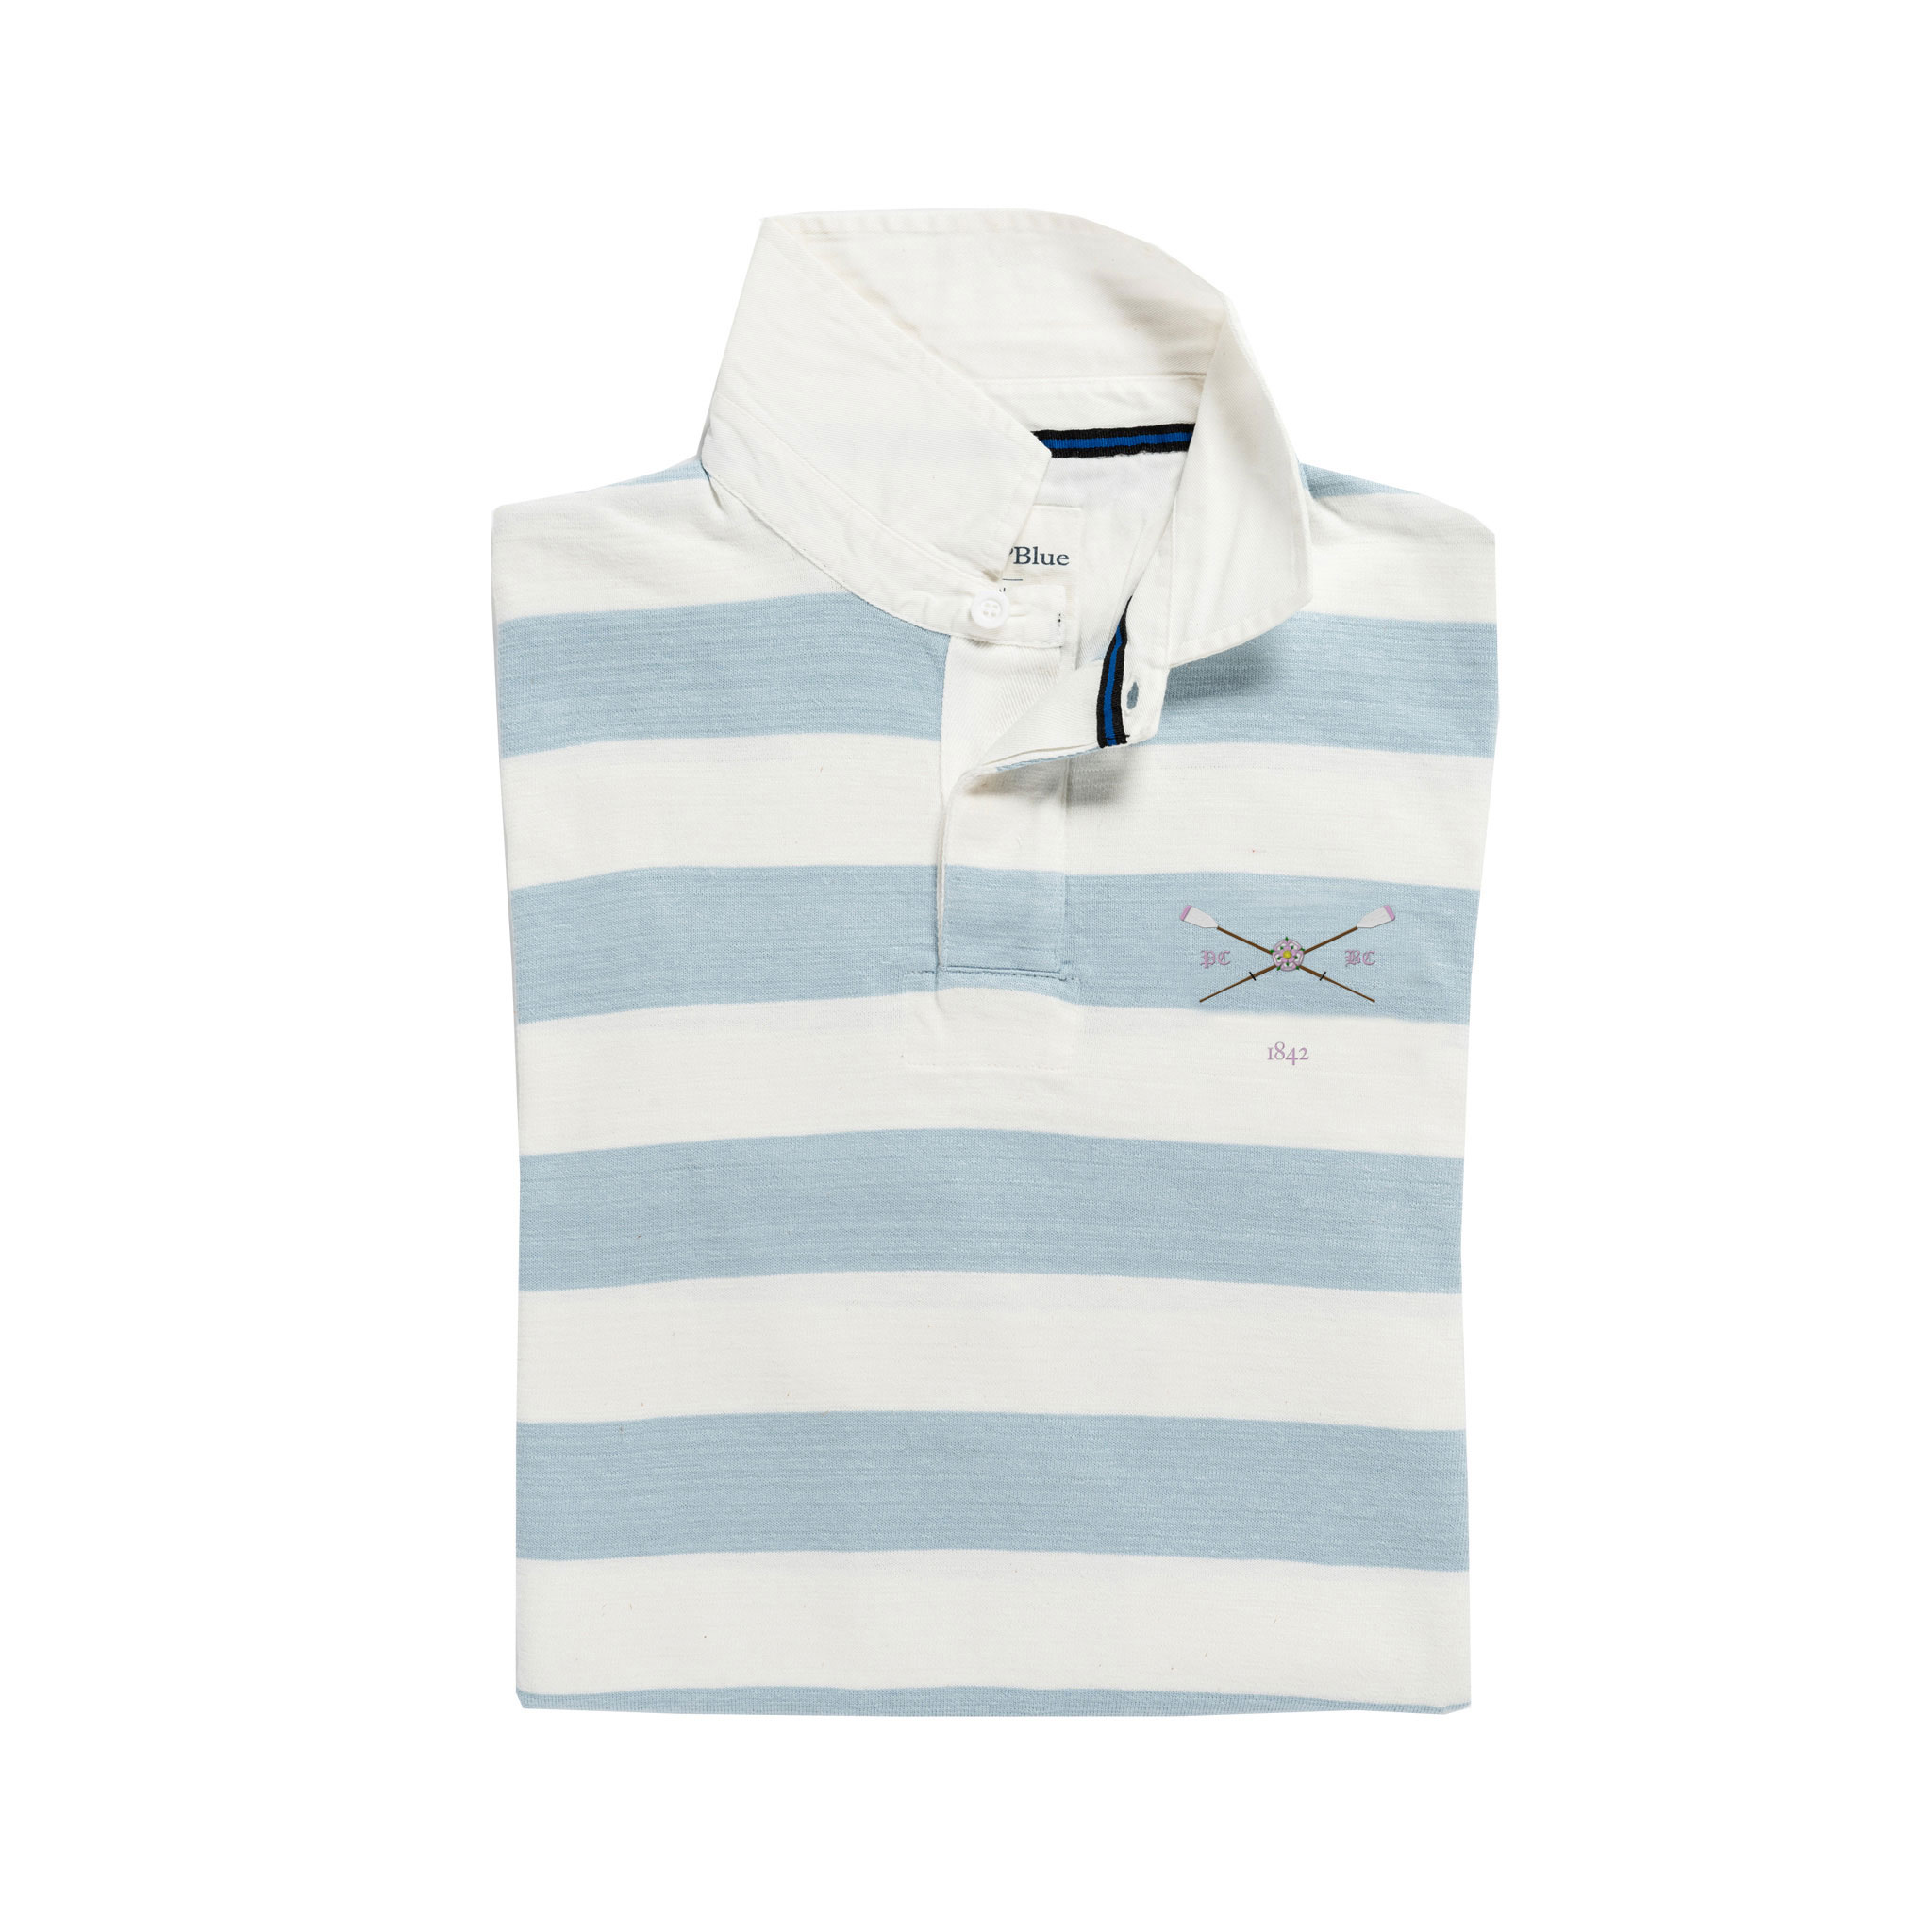 Pembroke 1842 Rugby Shirt Blue and White_Folded